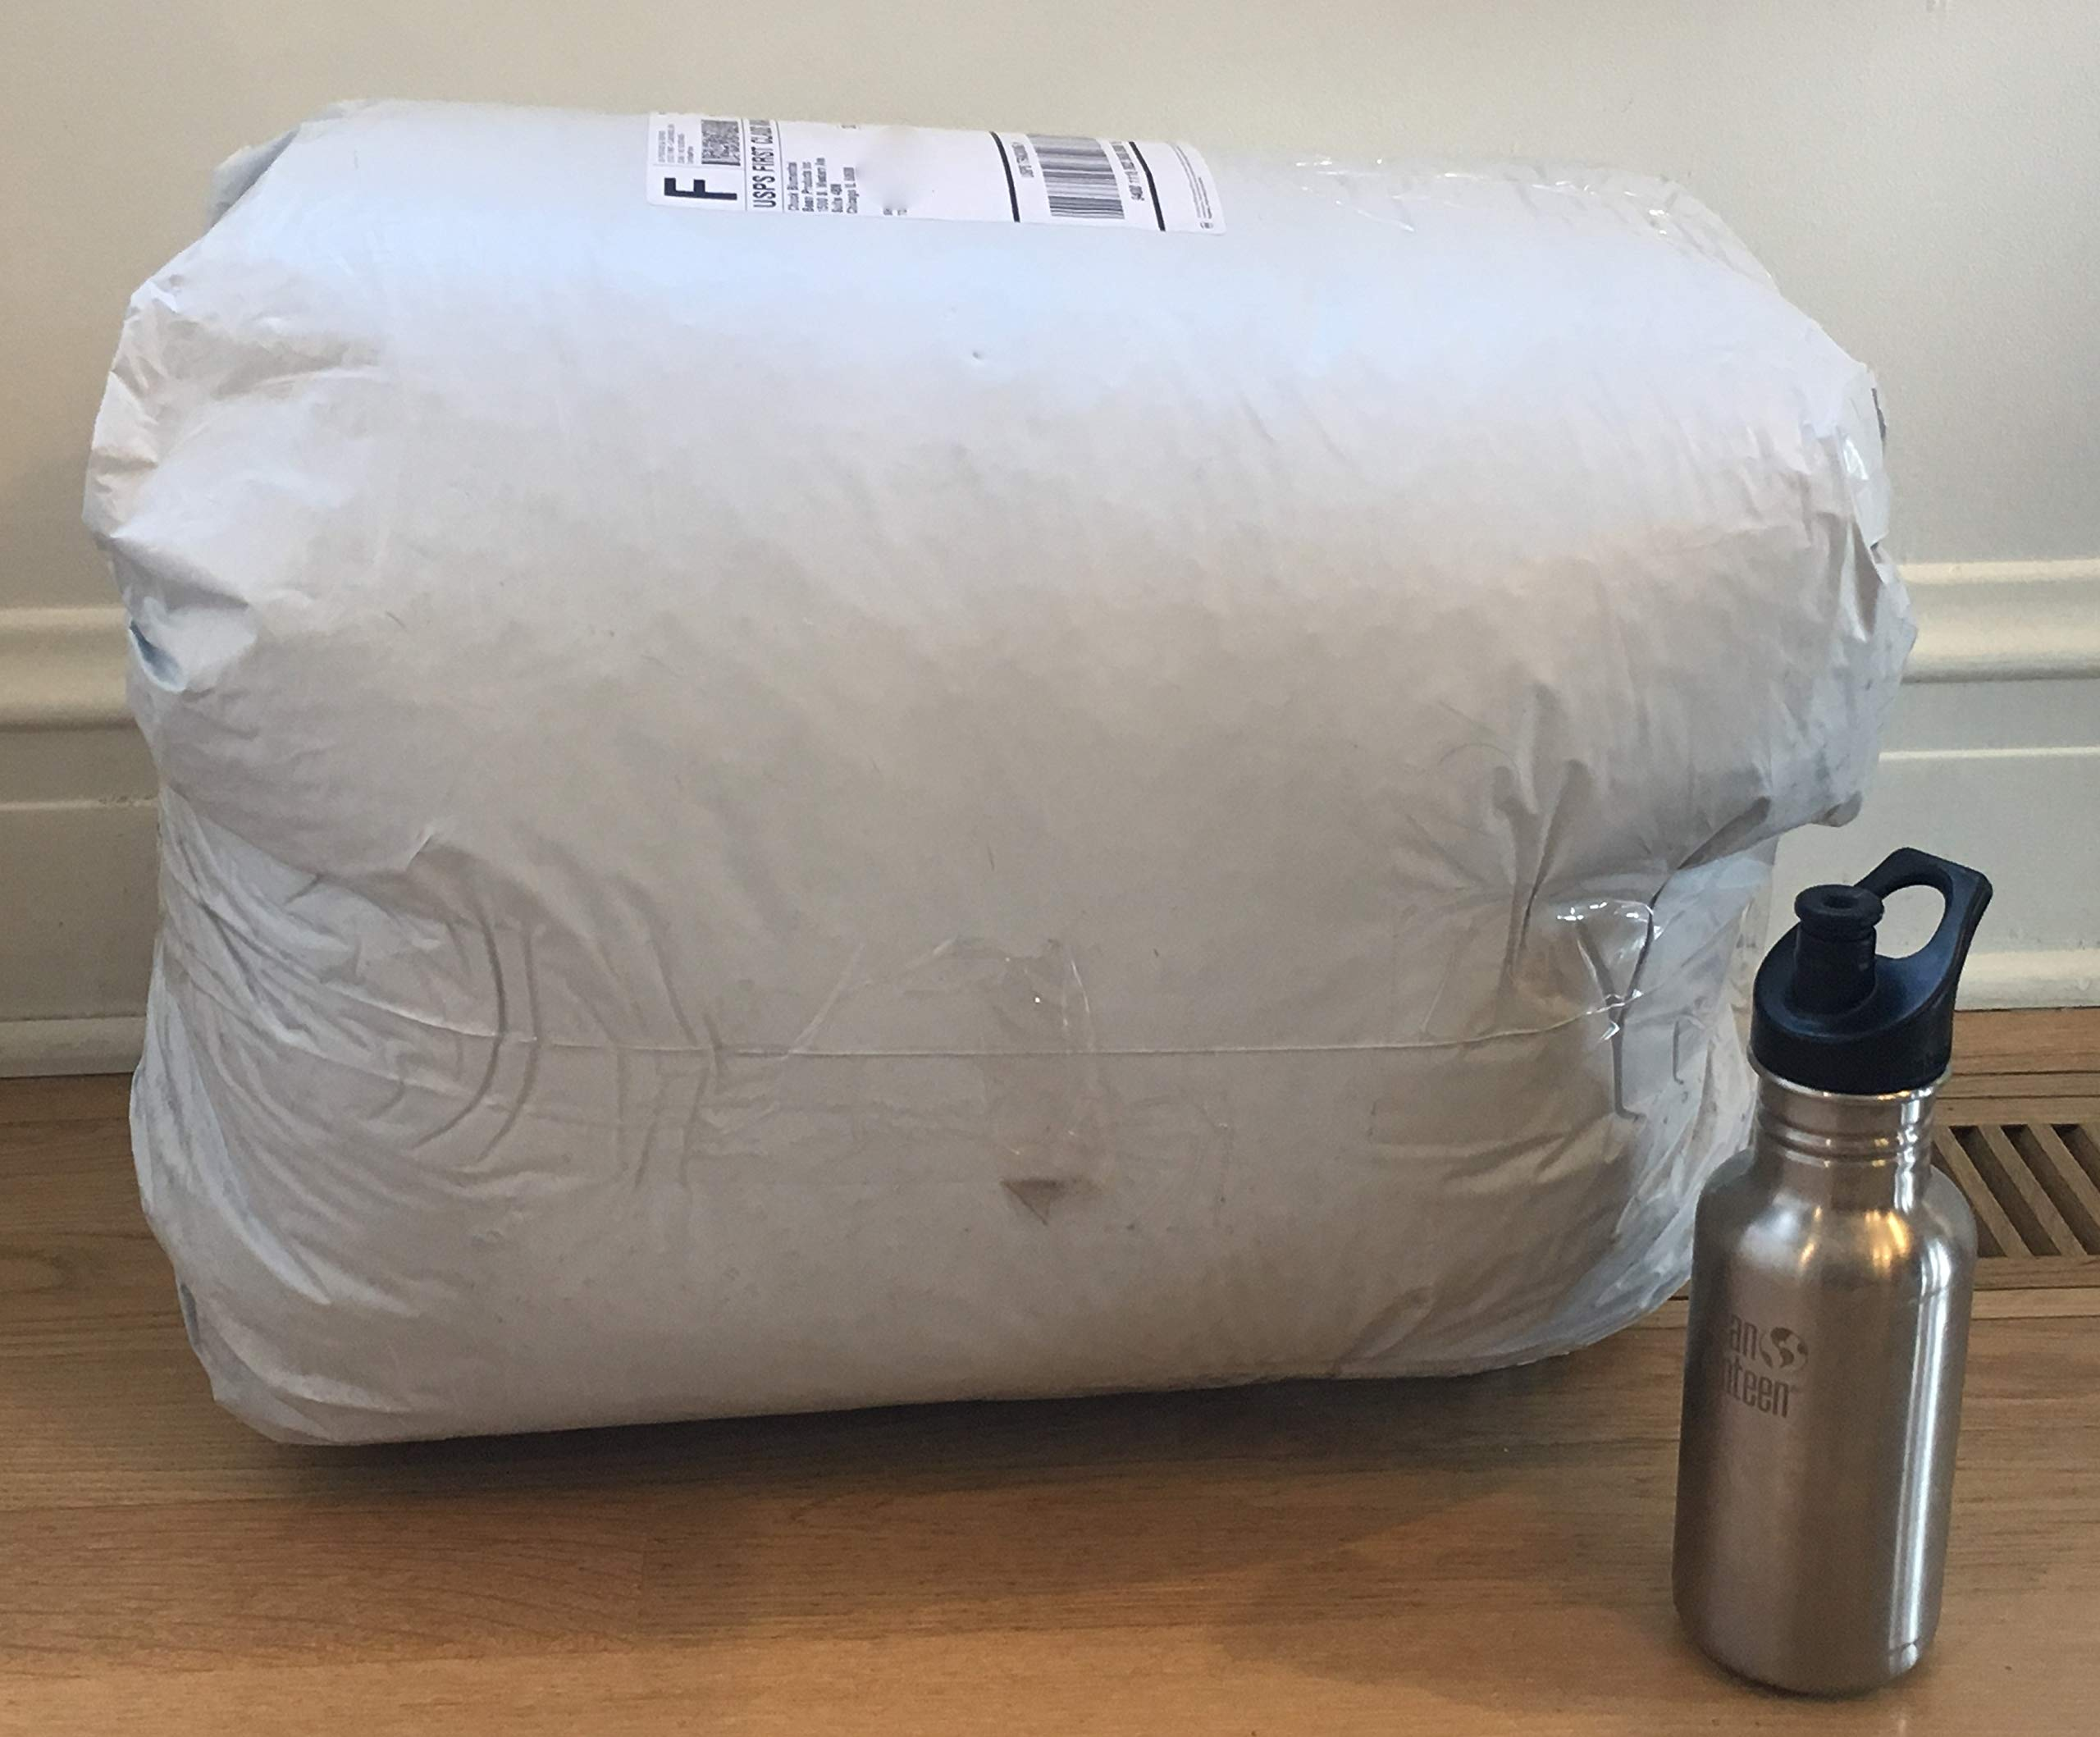 Bean Products Bean Bag Filling 2 Cubic ft. 57 liters Virgin Recycled New Eco Friendly Polystyrene EPS Bead beanbag Refill Made in USA by Bean Products (Image #2)